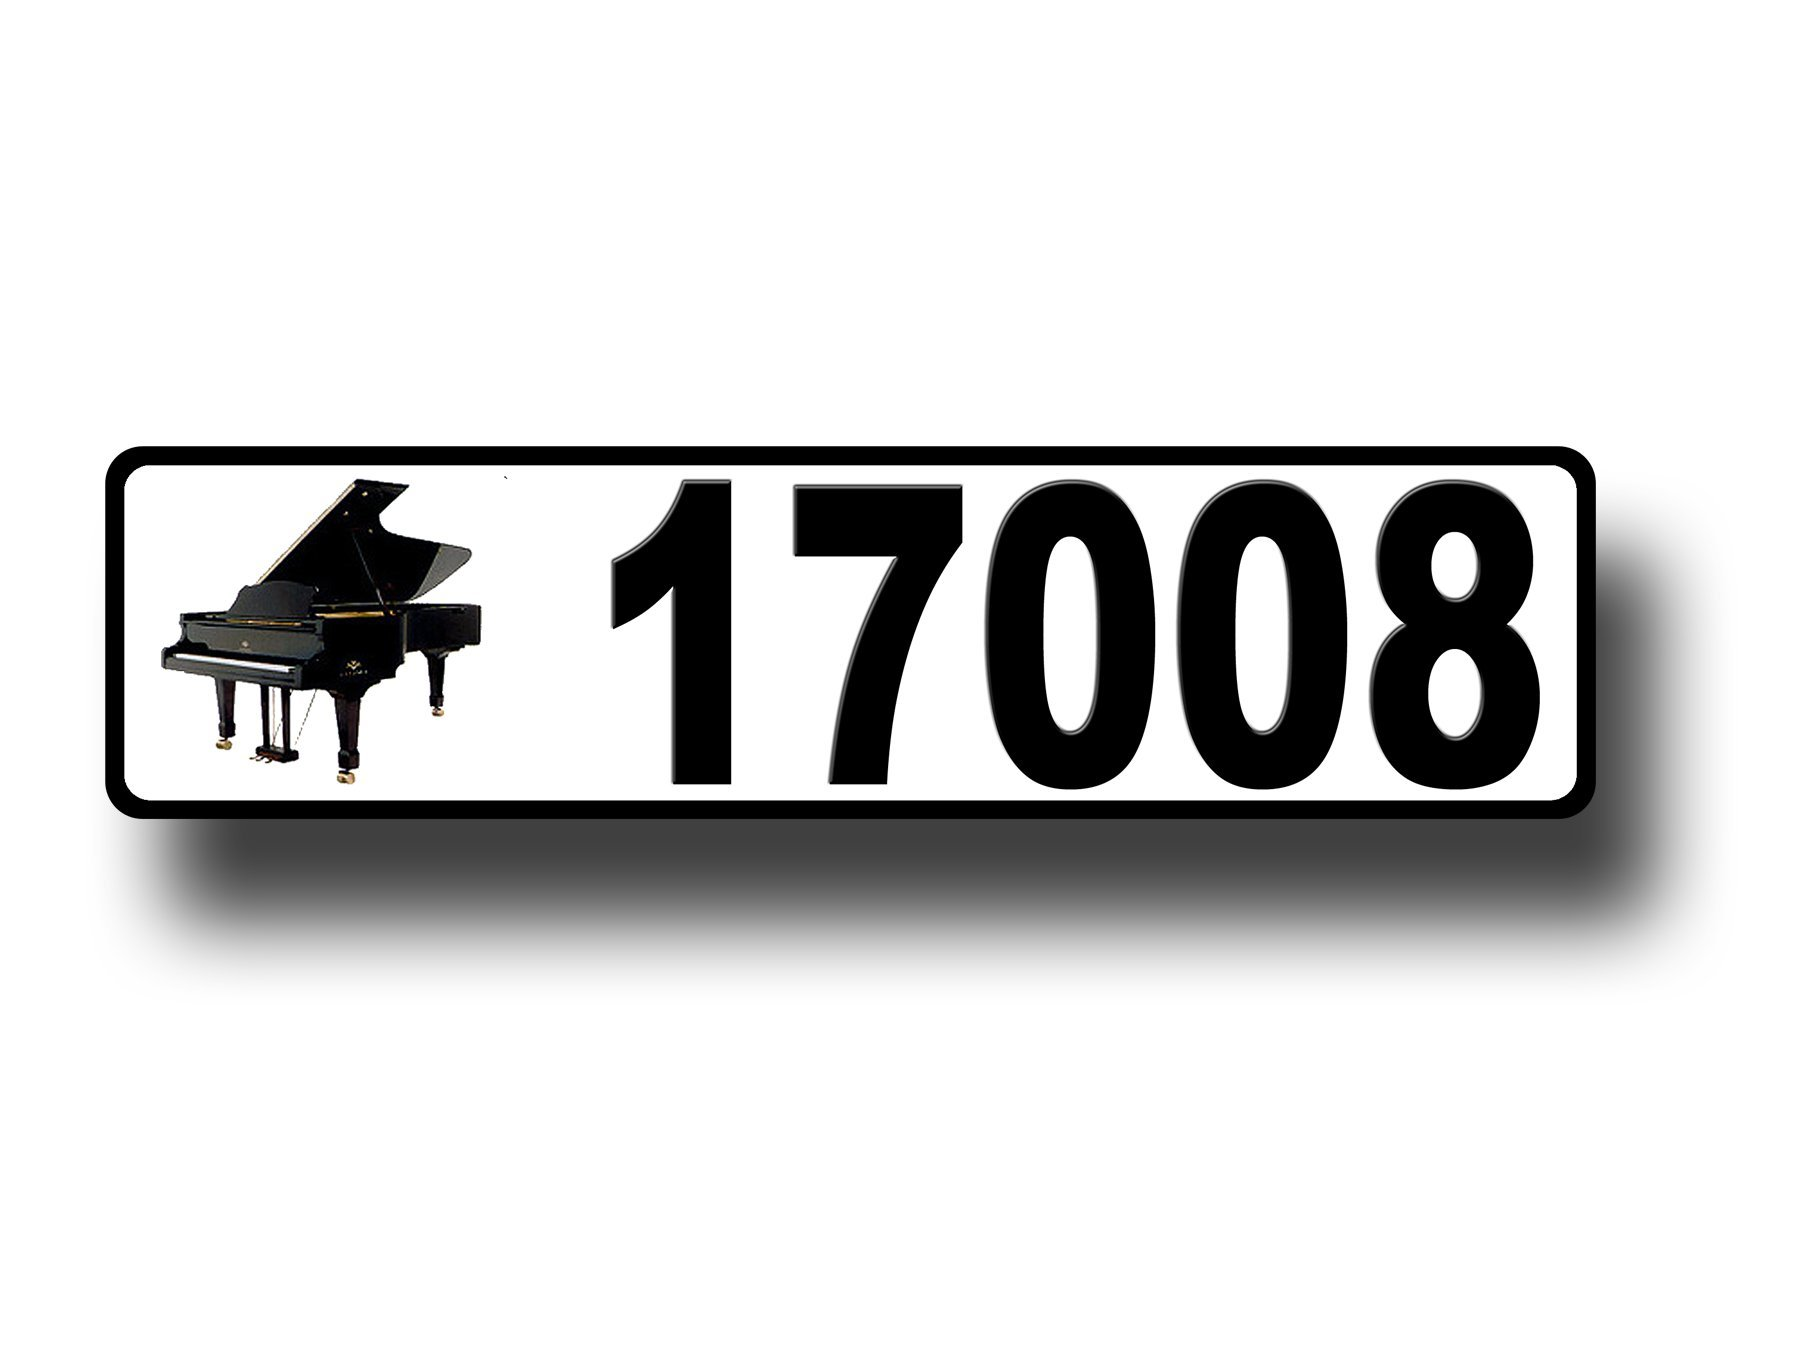 Piano, Curb, Mailbox, House Address Plaque, Reflective by West Coast Curb-N-Sign